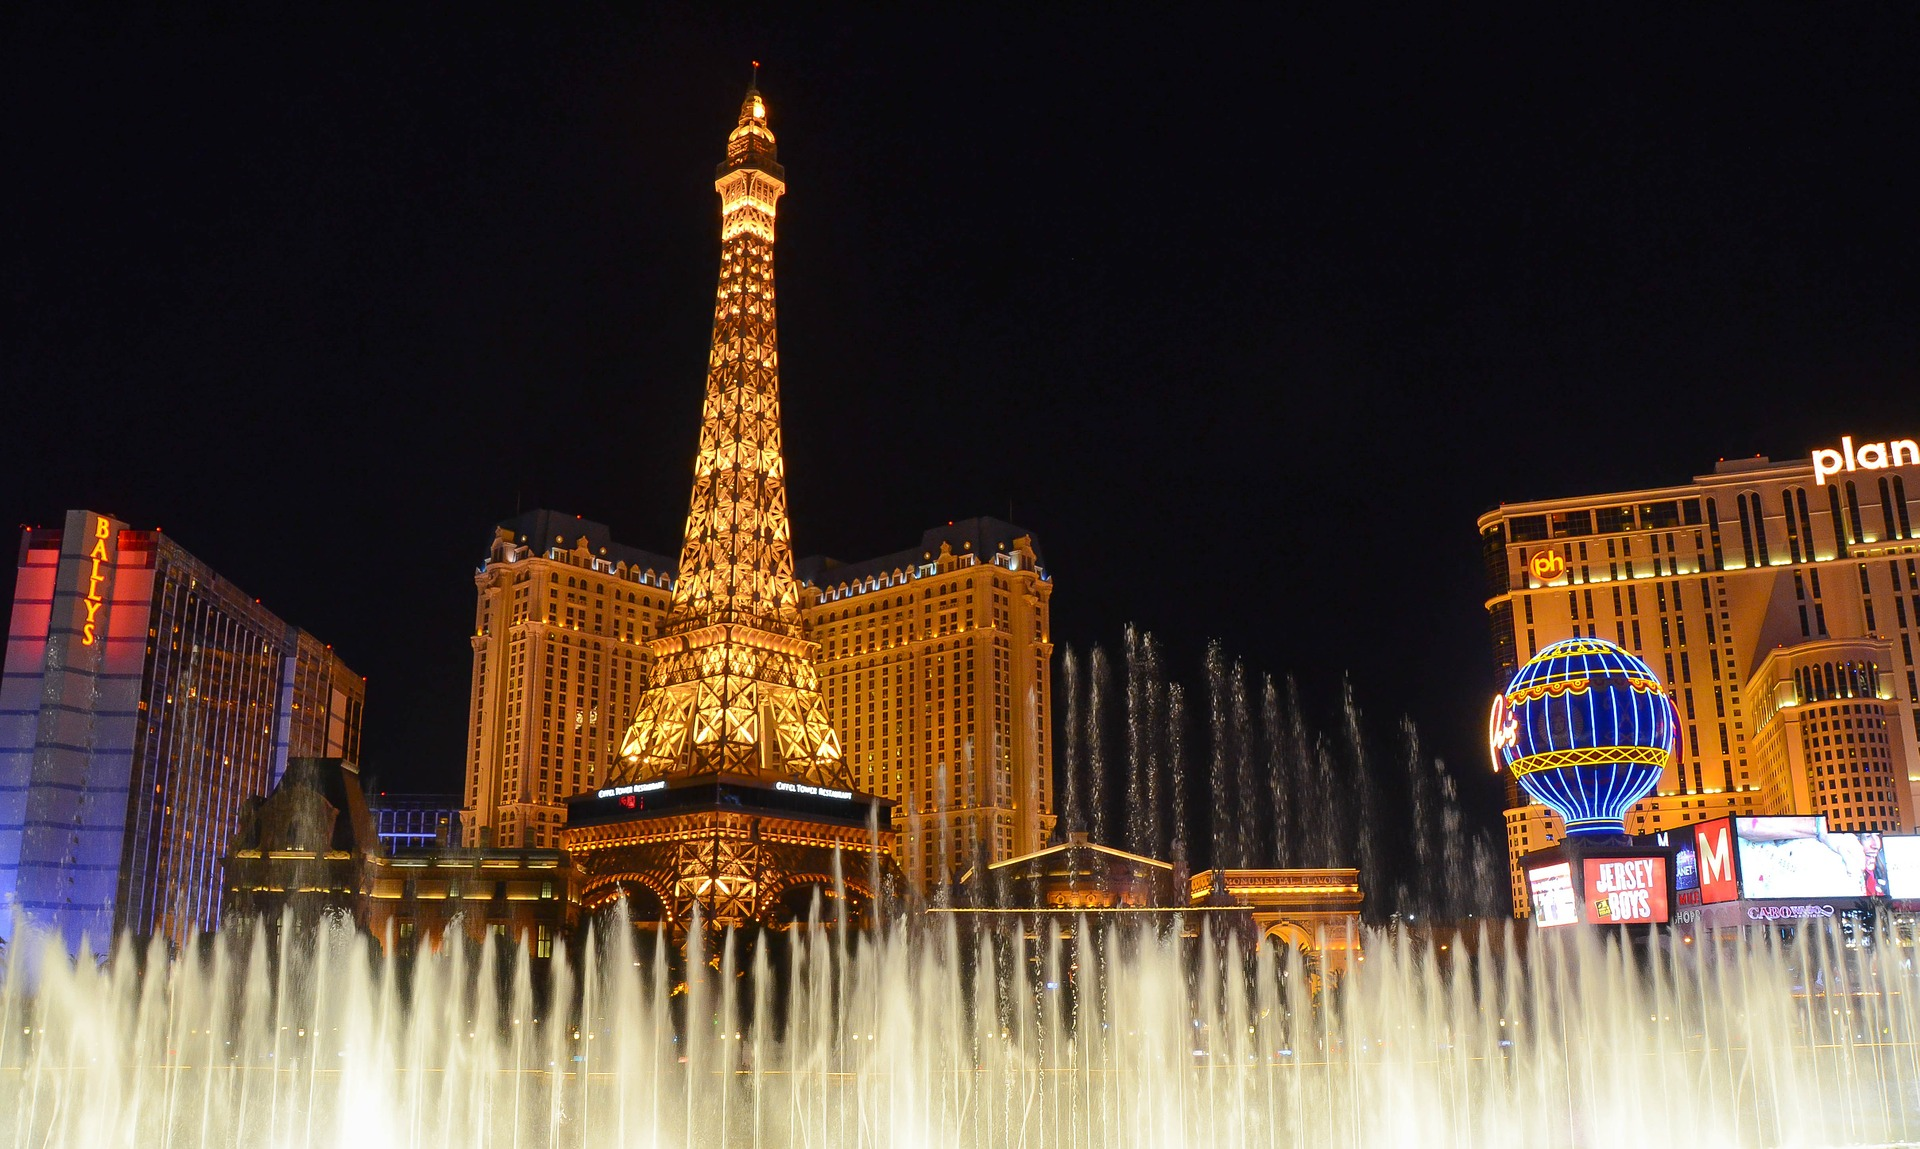 Bellagio's lakefront dancing fountains in Las Vegas, with the Eiffel Tower Experience in background